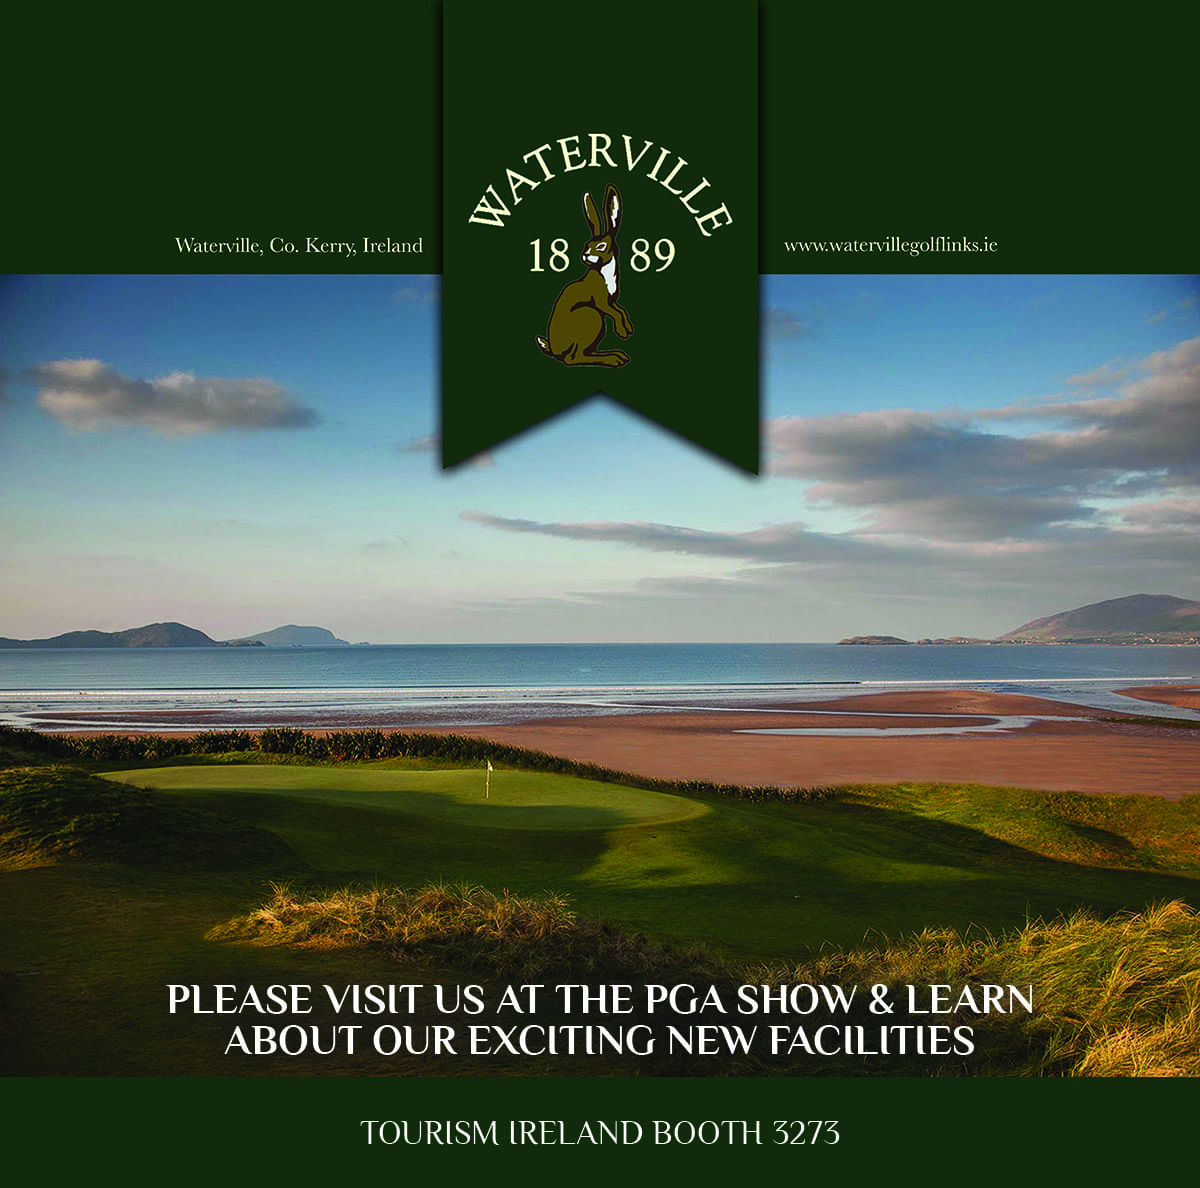 Waterville Golf Links 2019 update